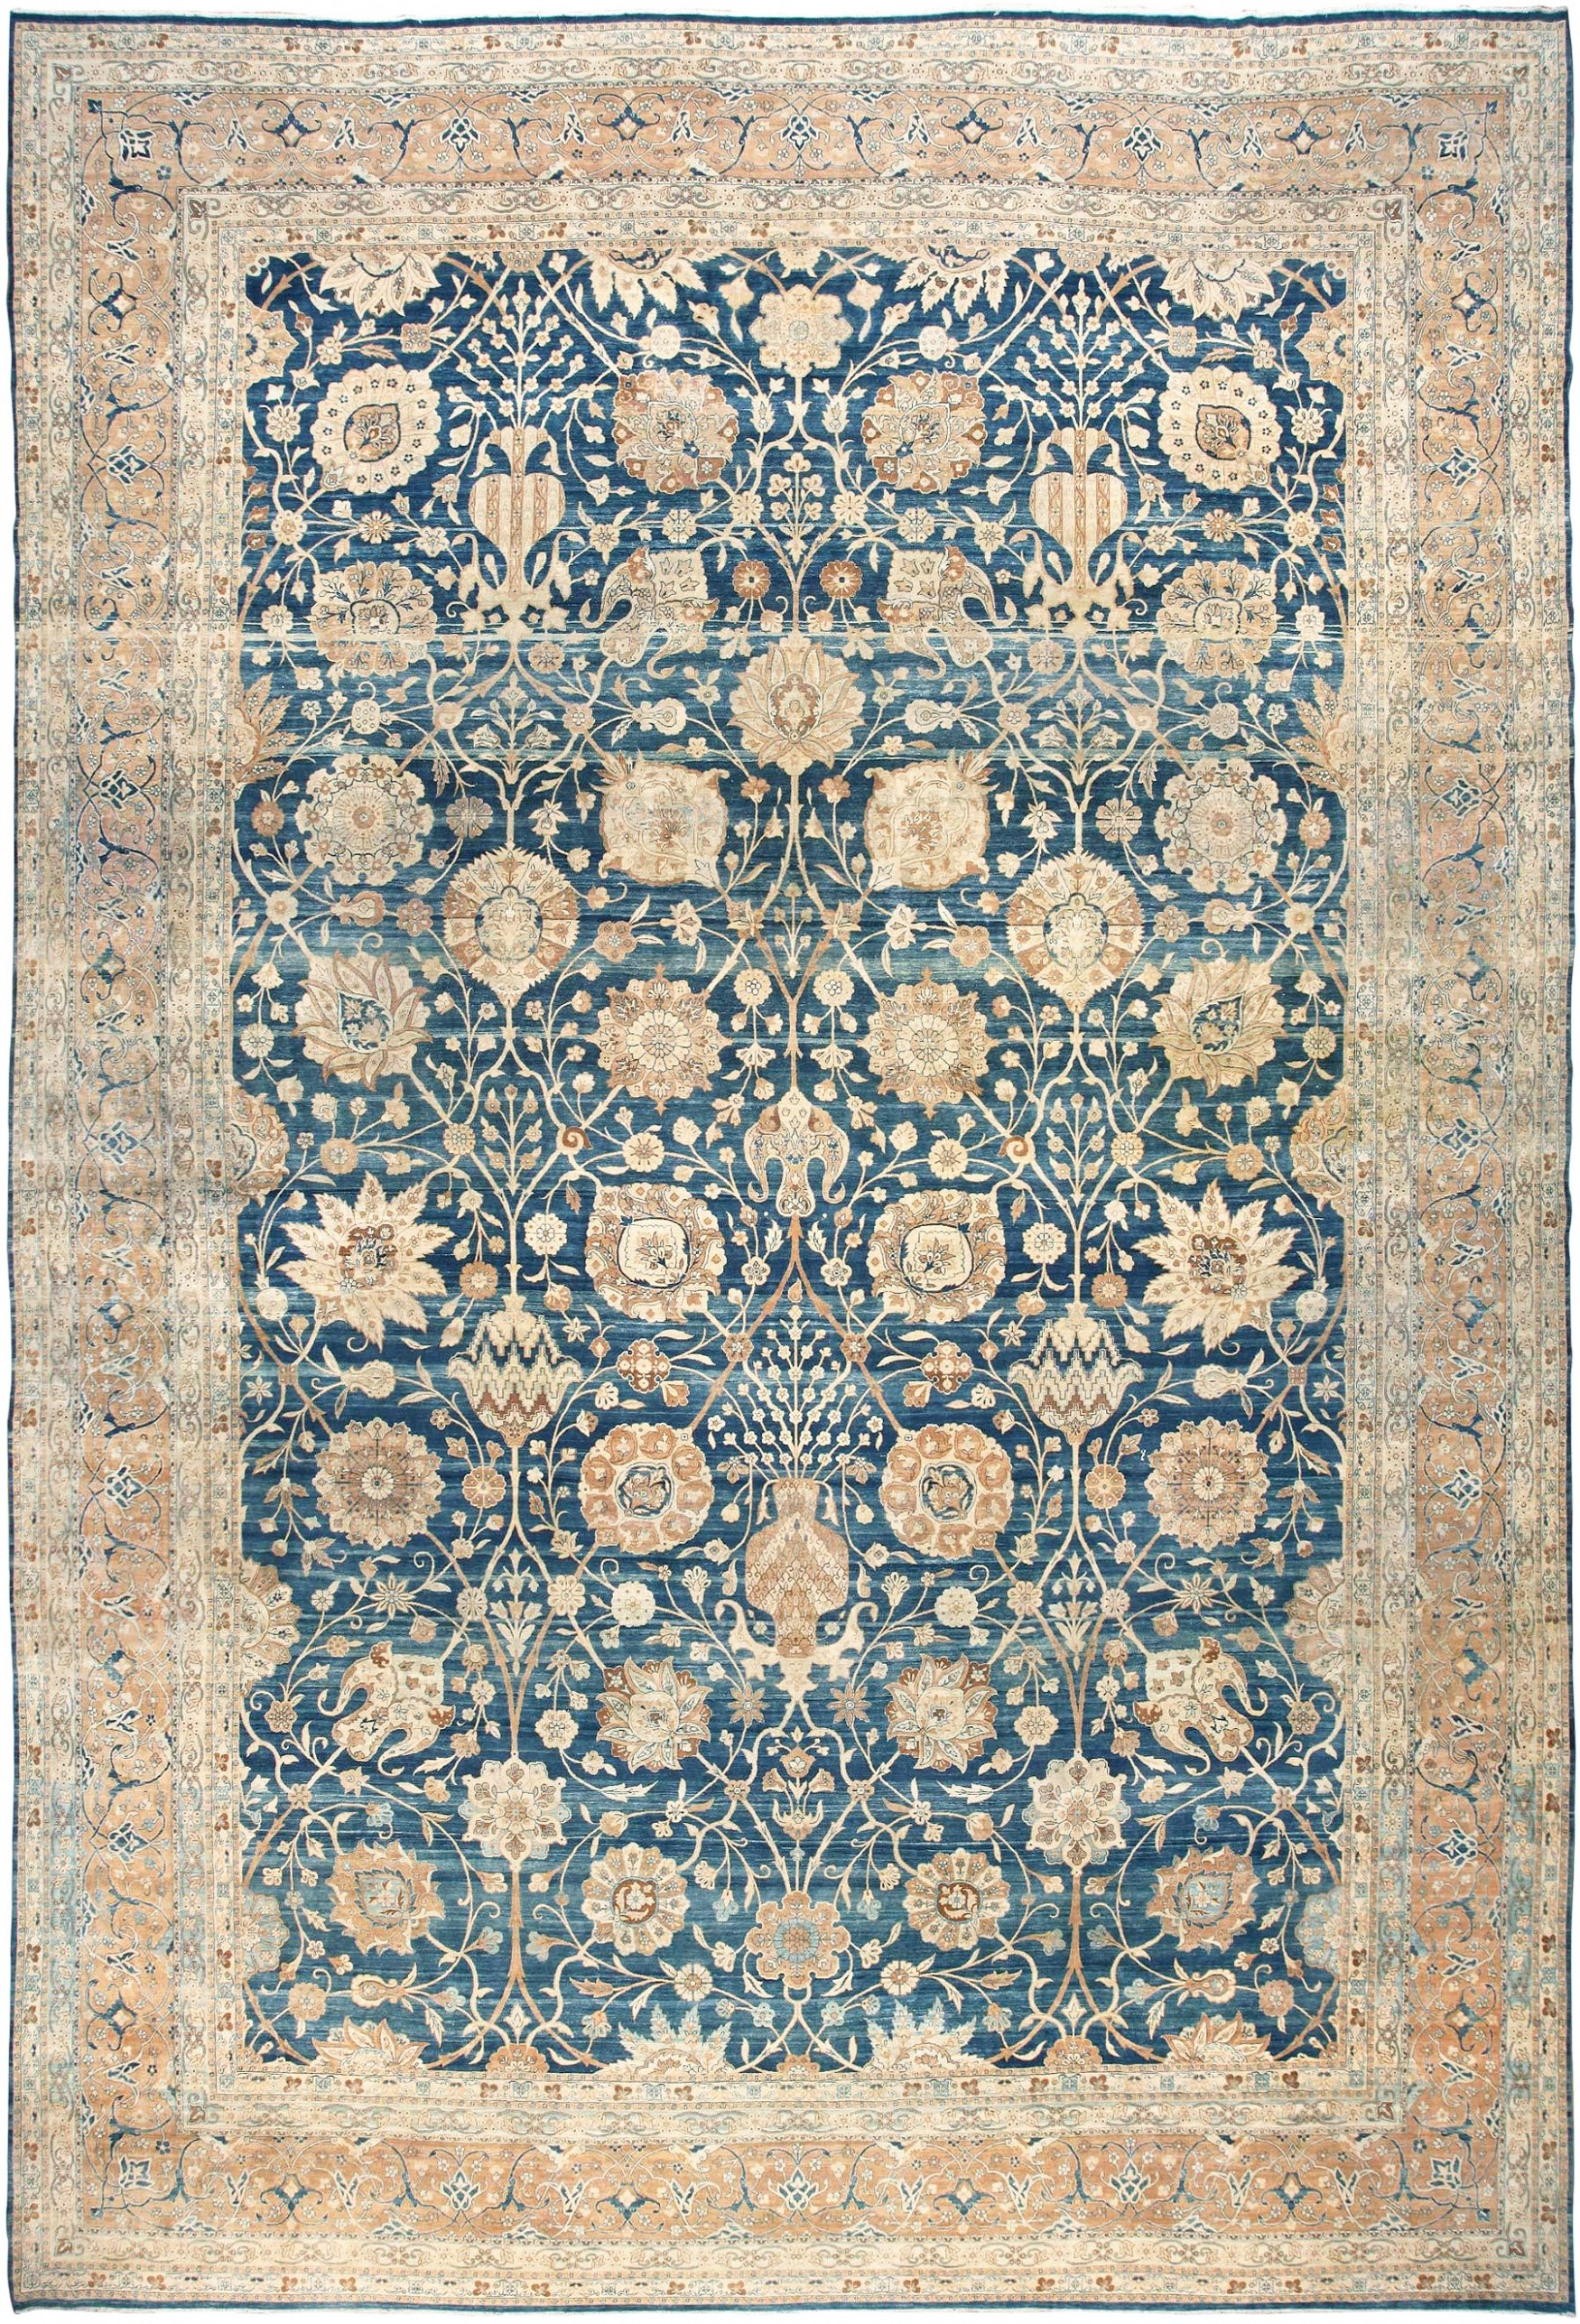 Persian Rugs Blue Roselawnlutheran In Blue Persian Rugs (Image 11 of 15)